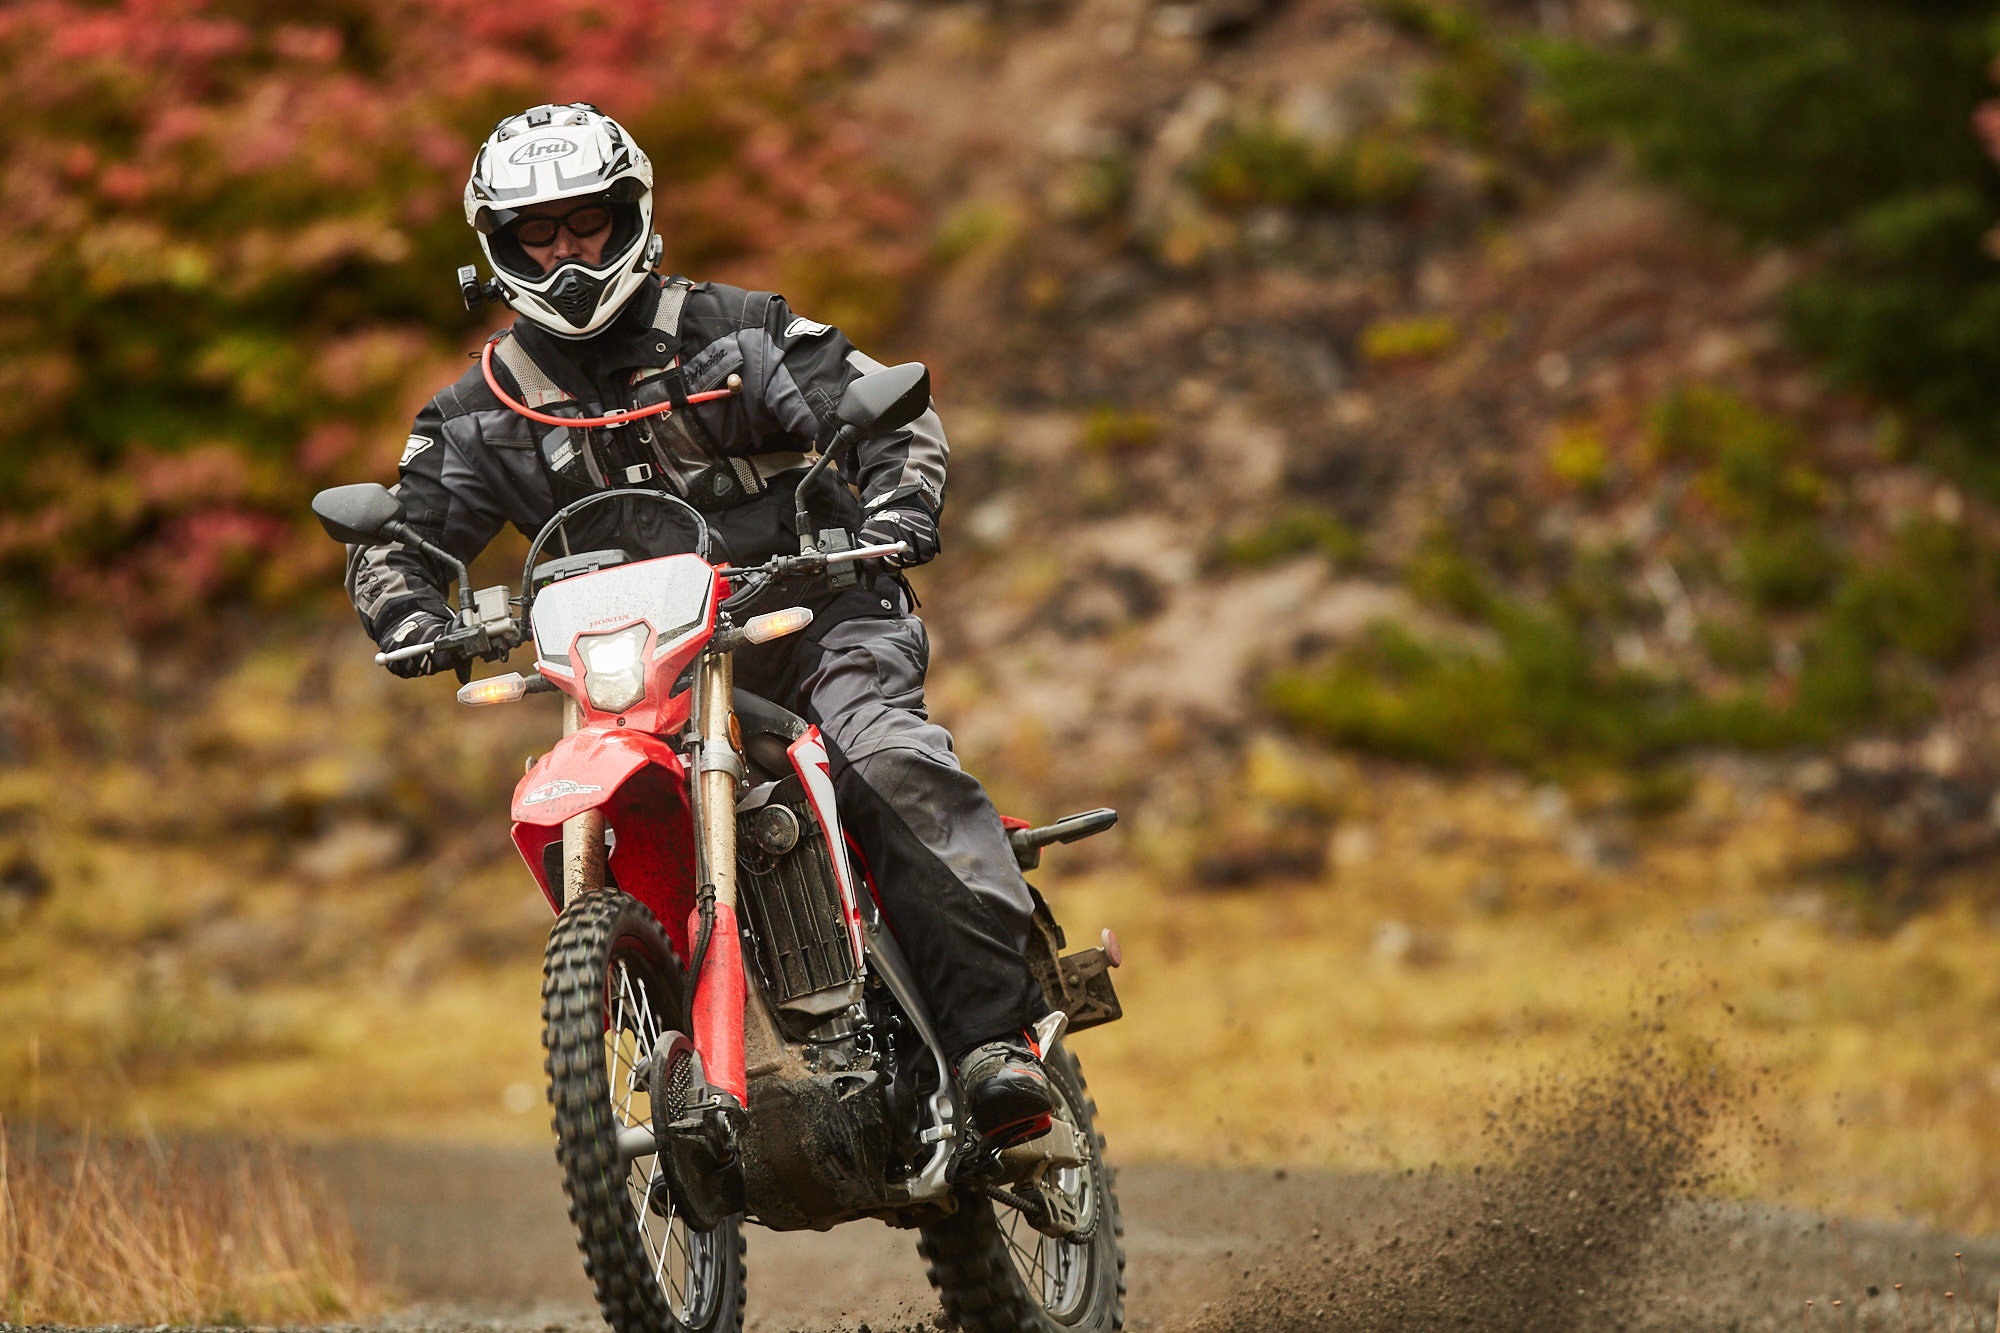 Full Review of the 2019 Honda CRF450L Dual Sport